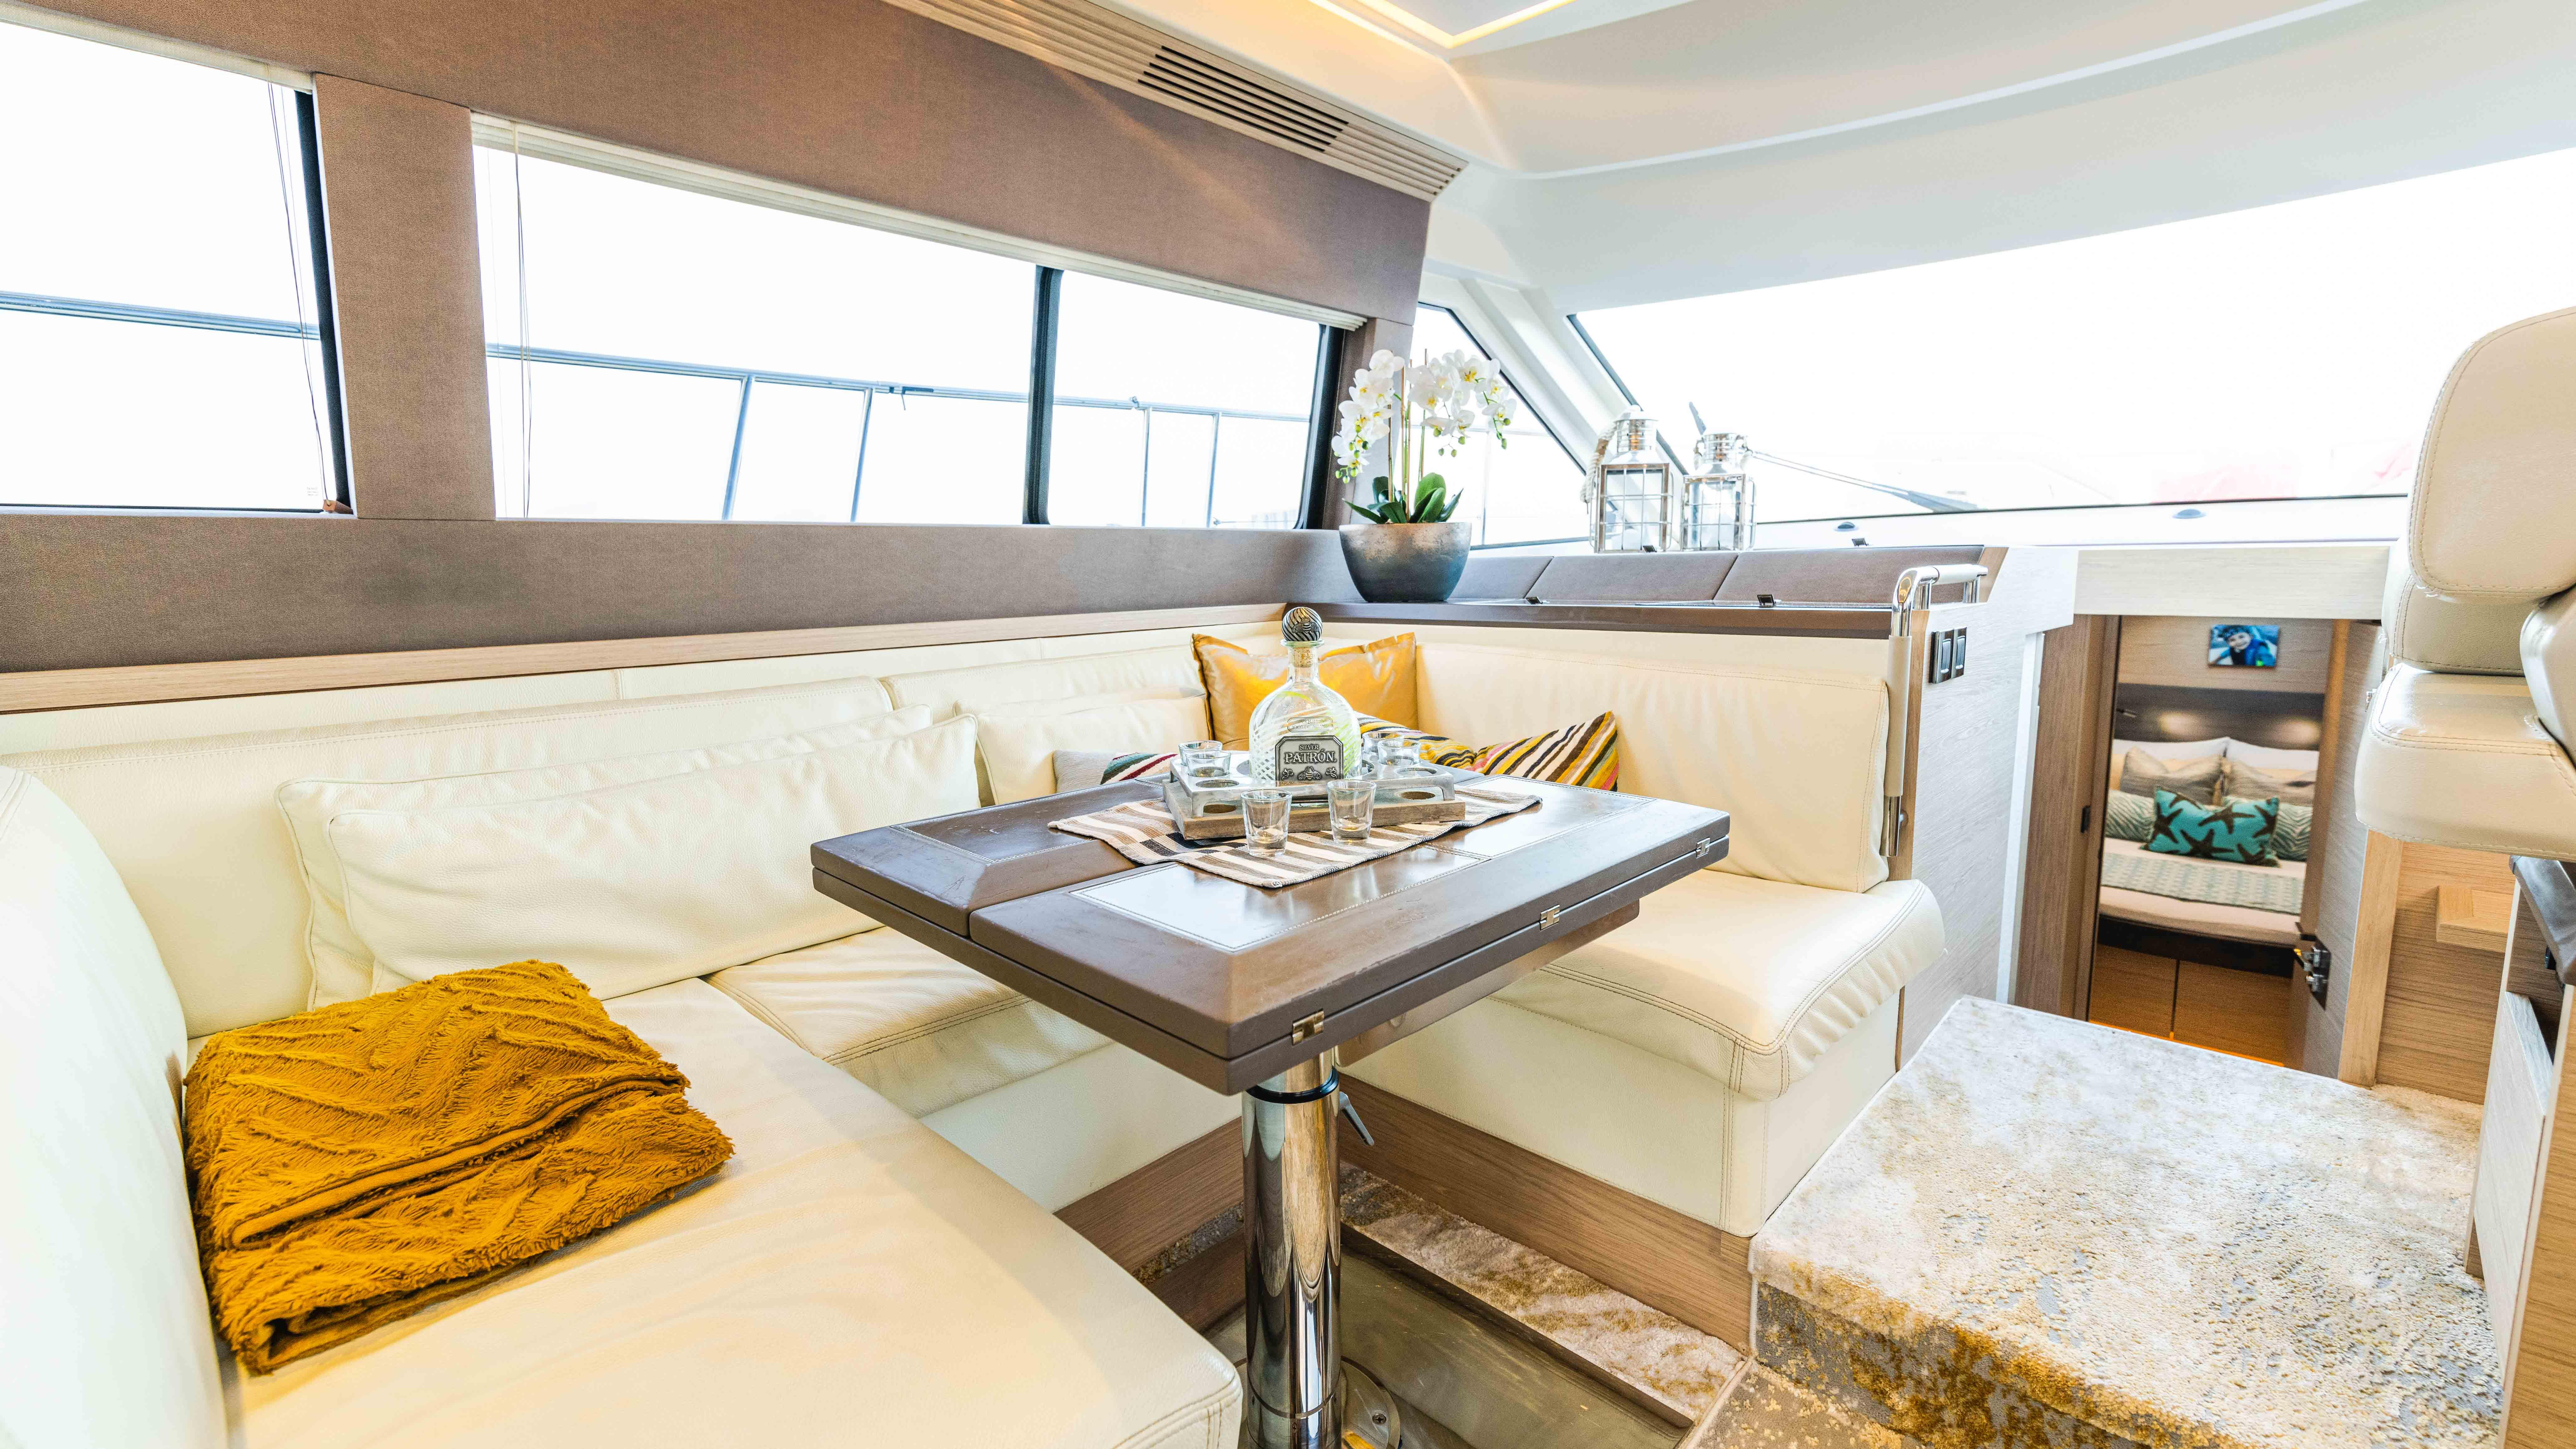 Aqua Yacht For Sale 50 Monte Carlo Yachts West Palm Beach Fl Denison Yacht Sales